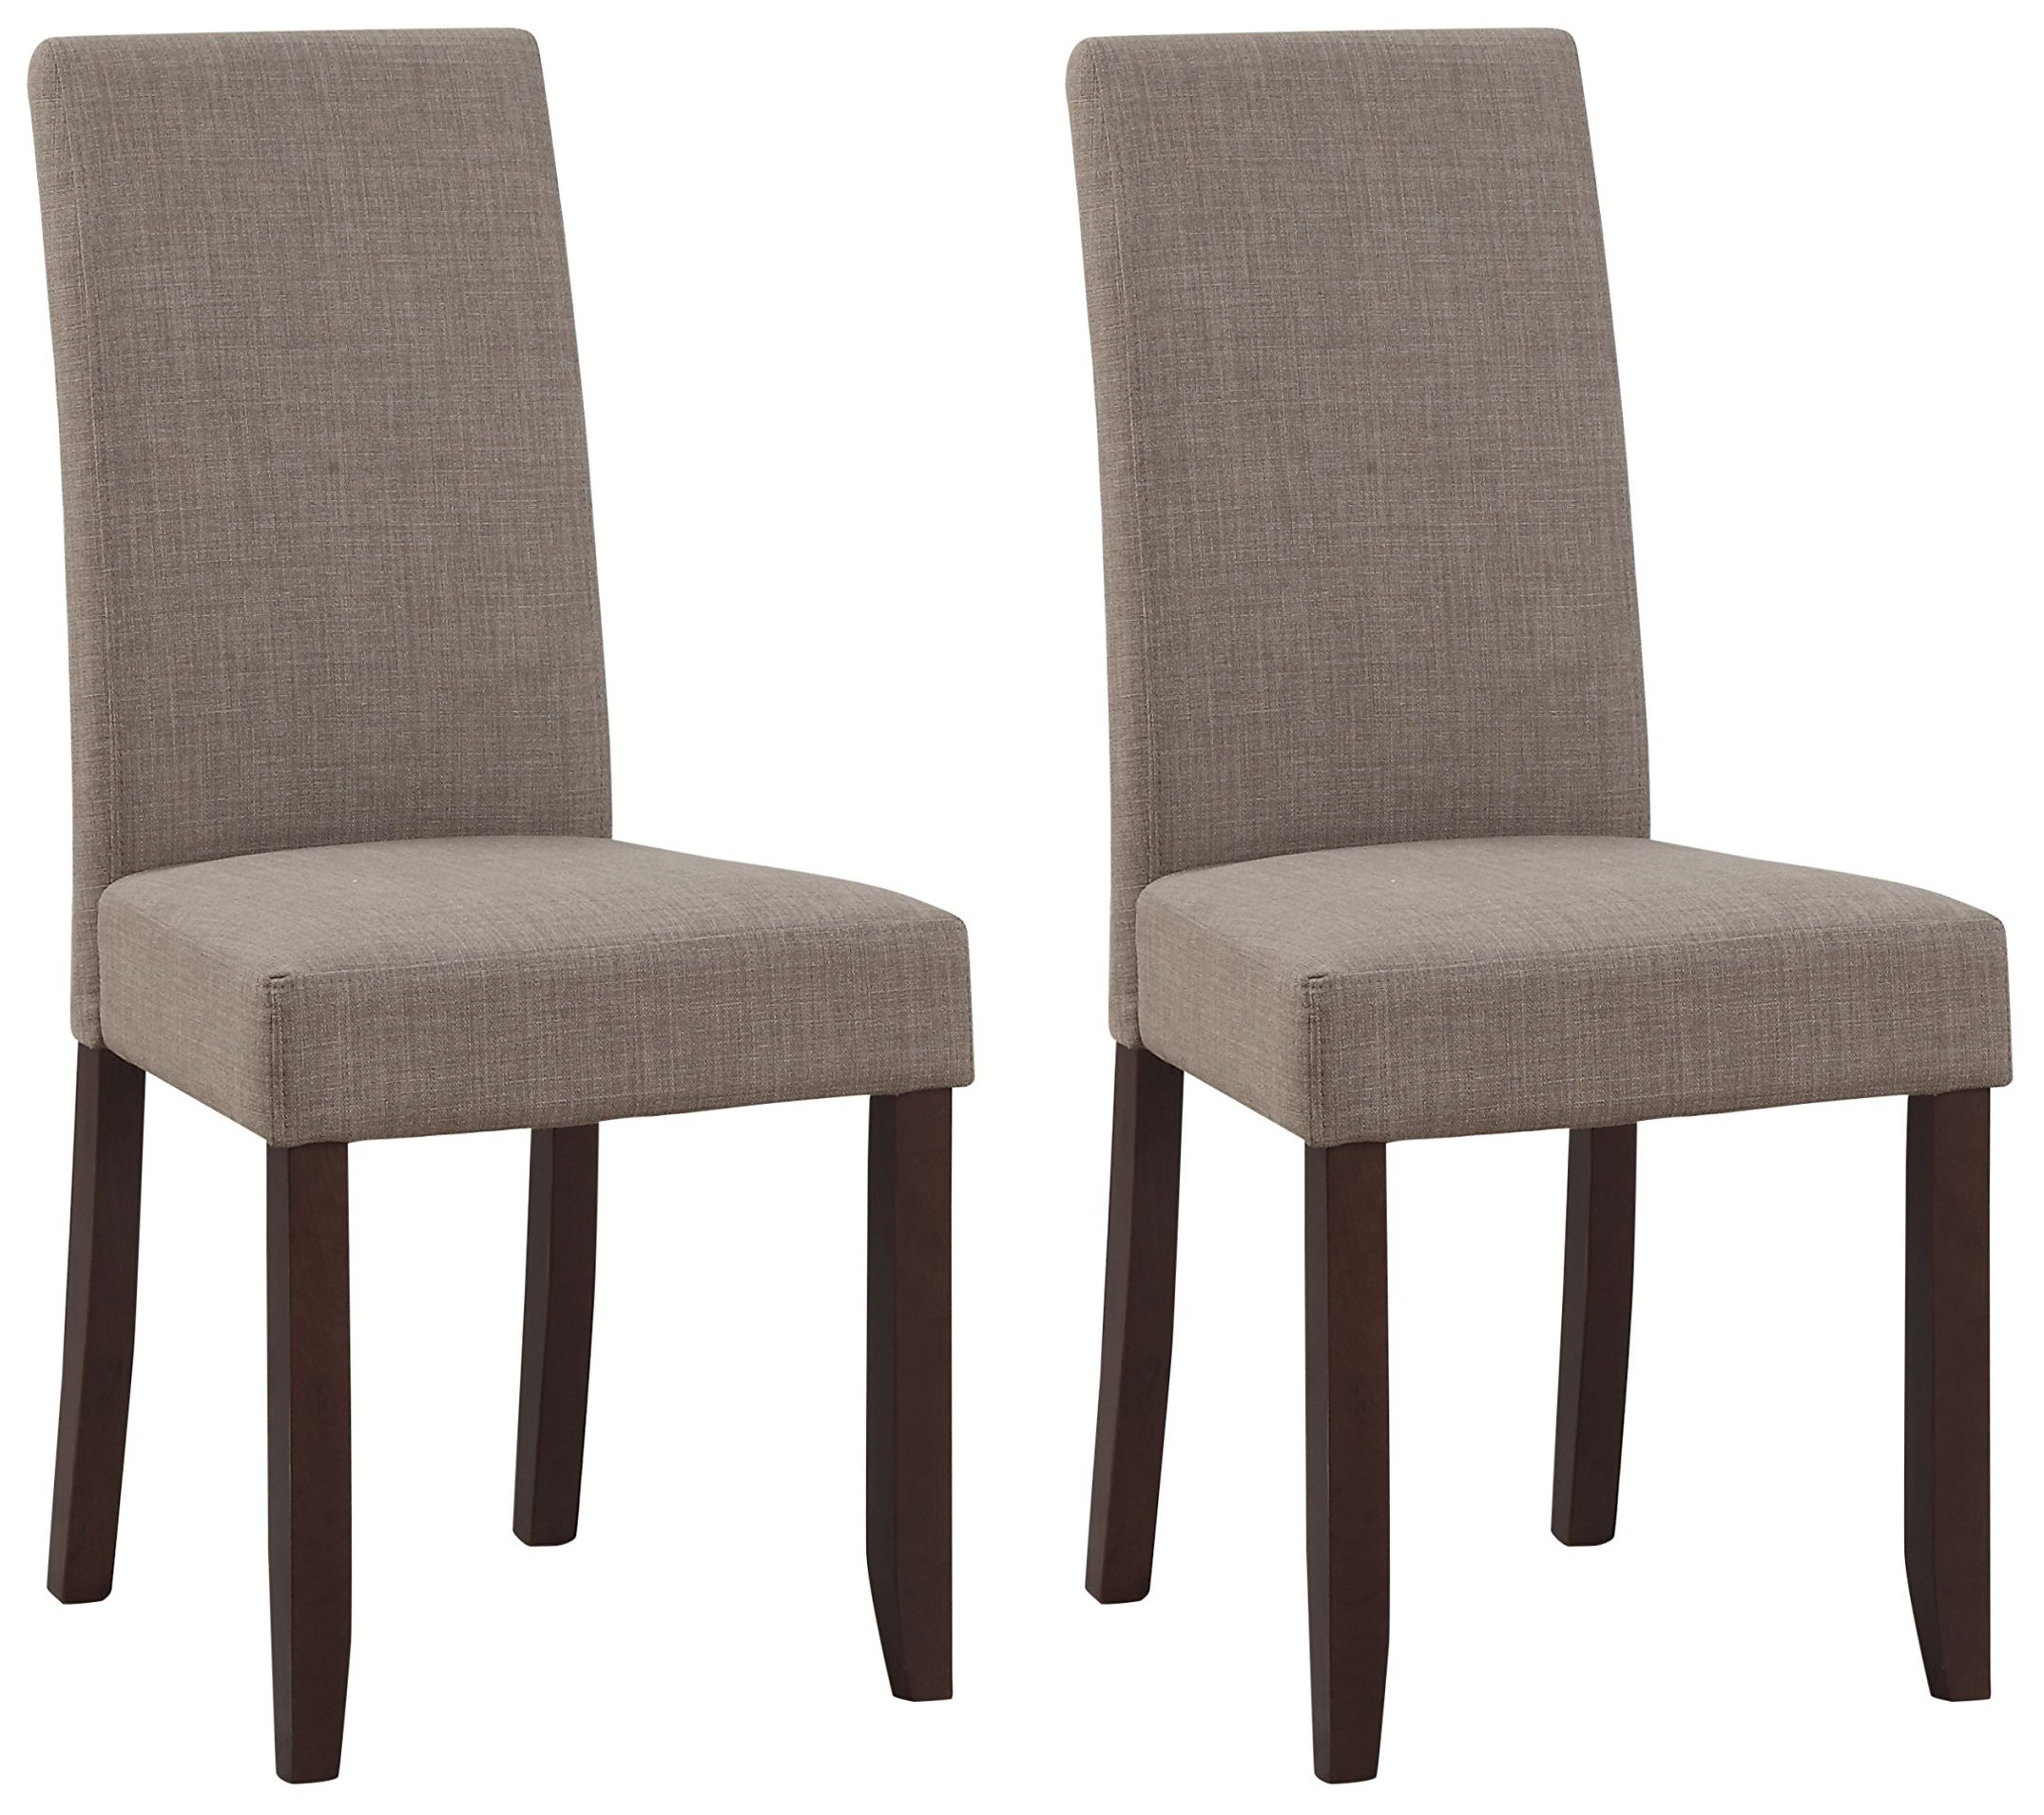 Simpli Home Acadian Parson Dining Chair, Light Mocha (Set of 2)